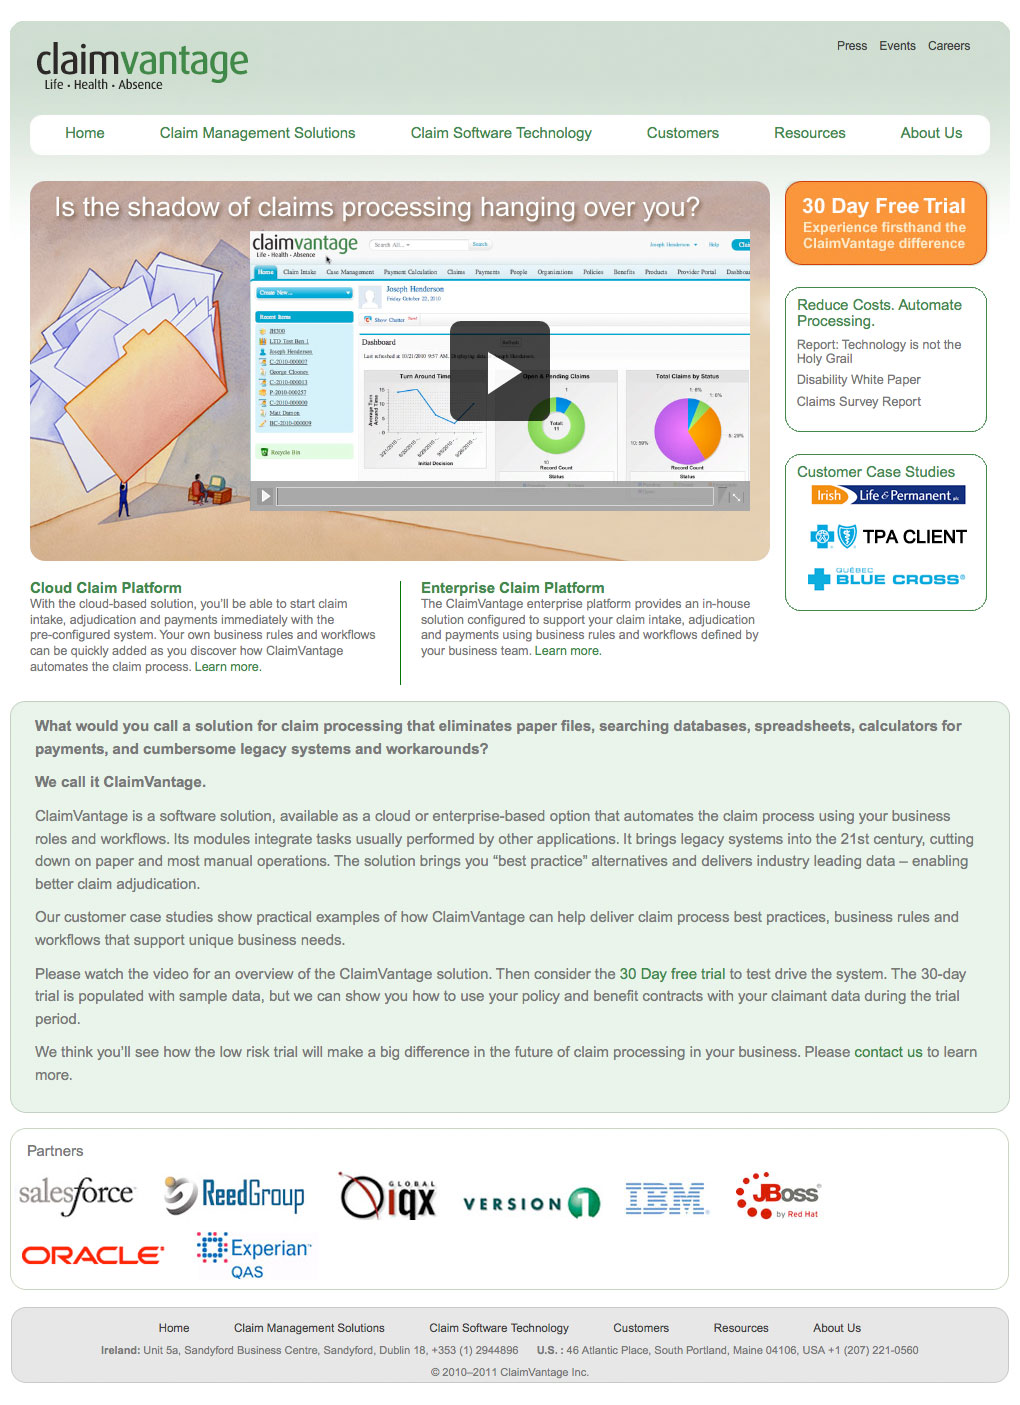 After: The redesigned claimvantage.com home page